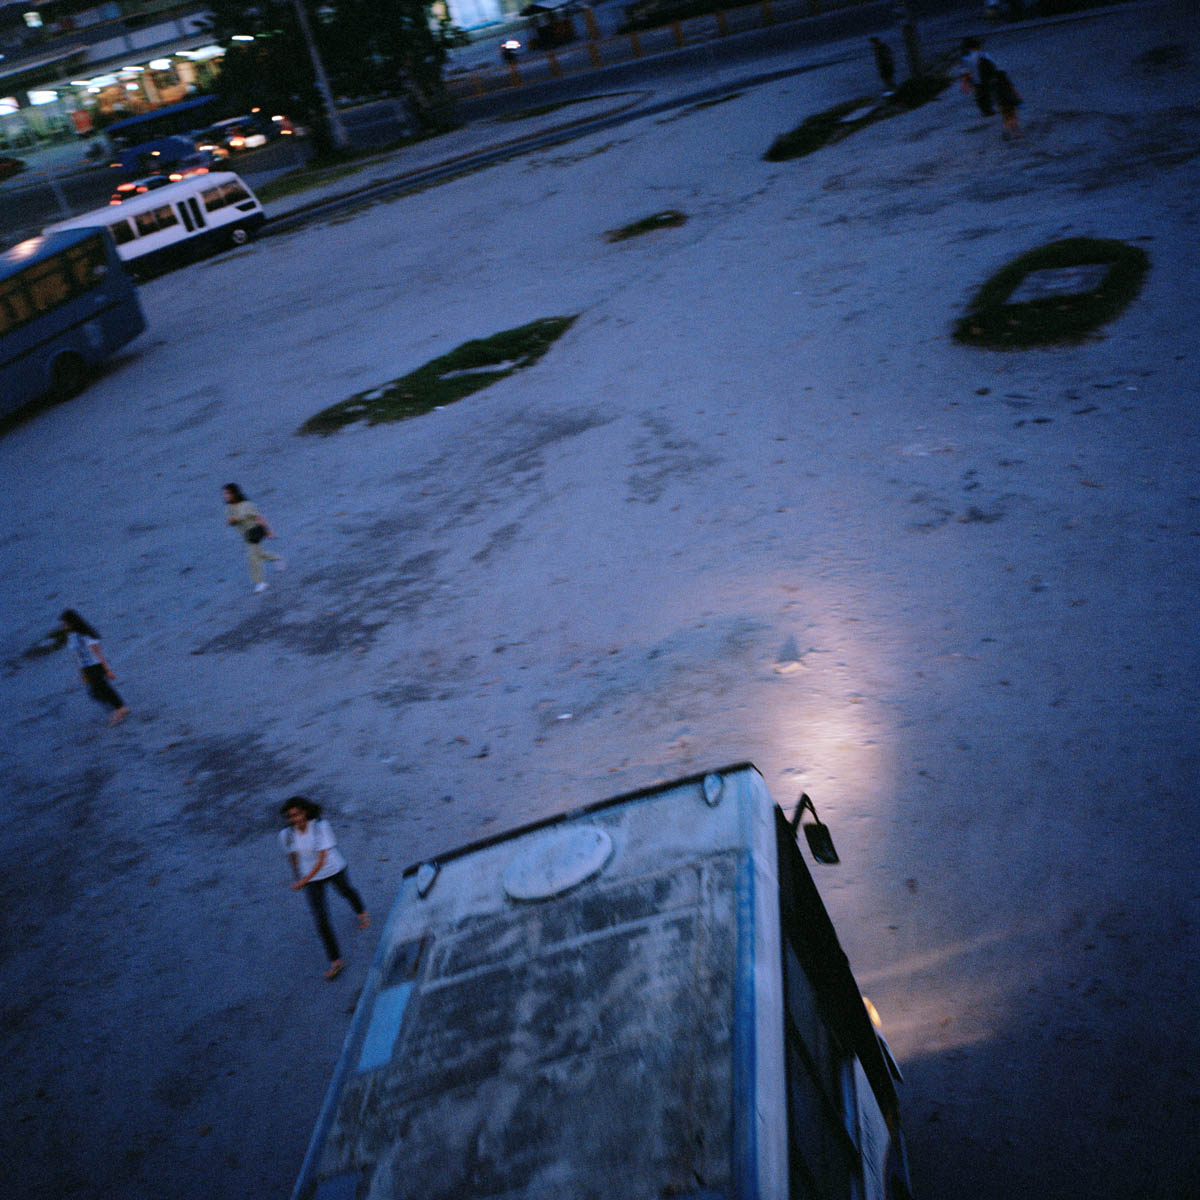 "Bus stand - The bus stand of Balibago at dusk. Angeles City, Philippines, August 2014. - Copyright © © S. Borcard - N. Metraux - Angeles - Central Luzon - Philippines - <A href=""https://maps.google.com/?ll=15.168055,120.586388&z=16"" target=""_blank"">(Map Bus stand)</A>"